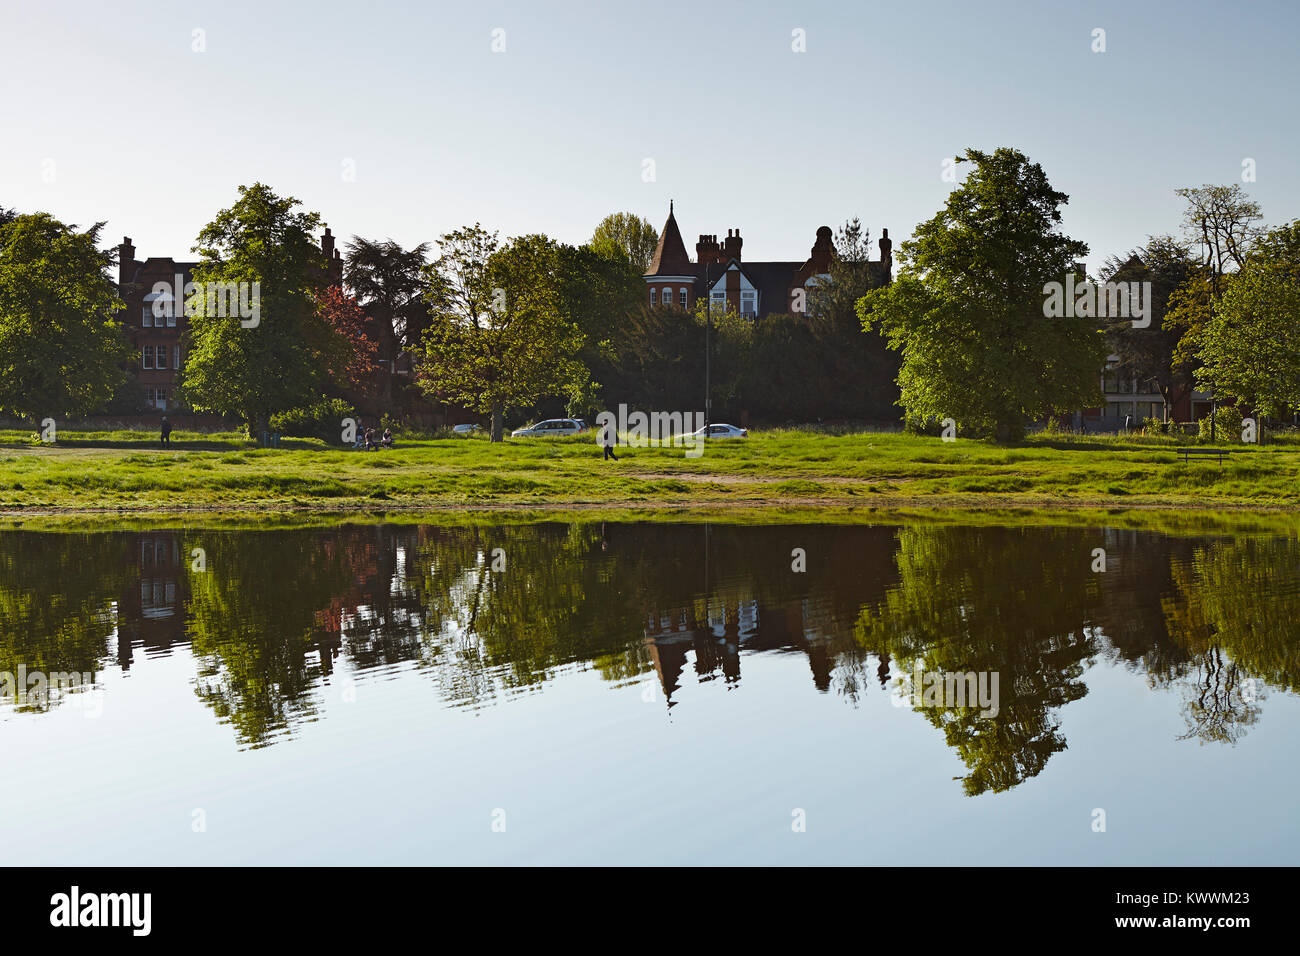 e1fb1d202961e Wimbledon Common Stock Photos & Wimbledon Common Stock Images - Alamy